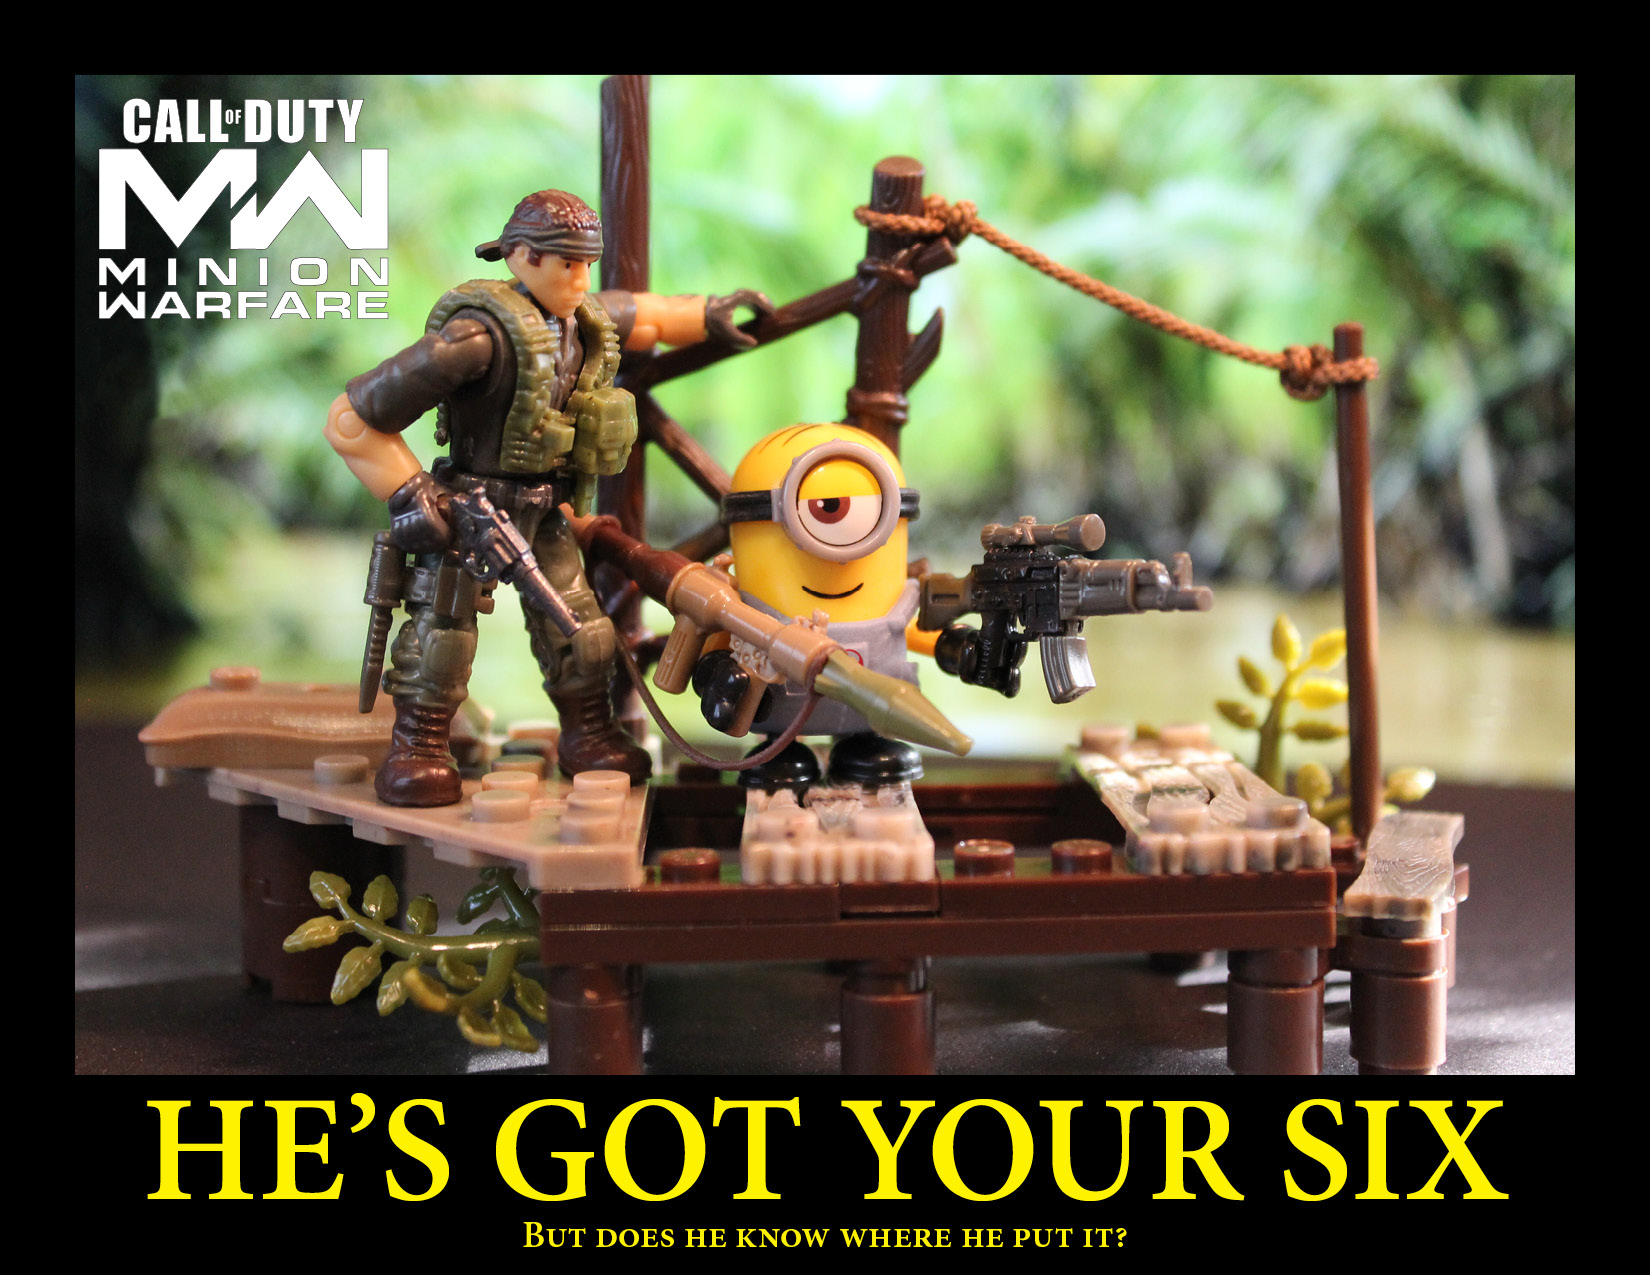 Call of Duty meets the Minions